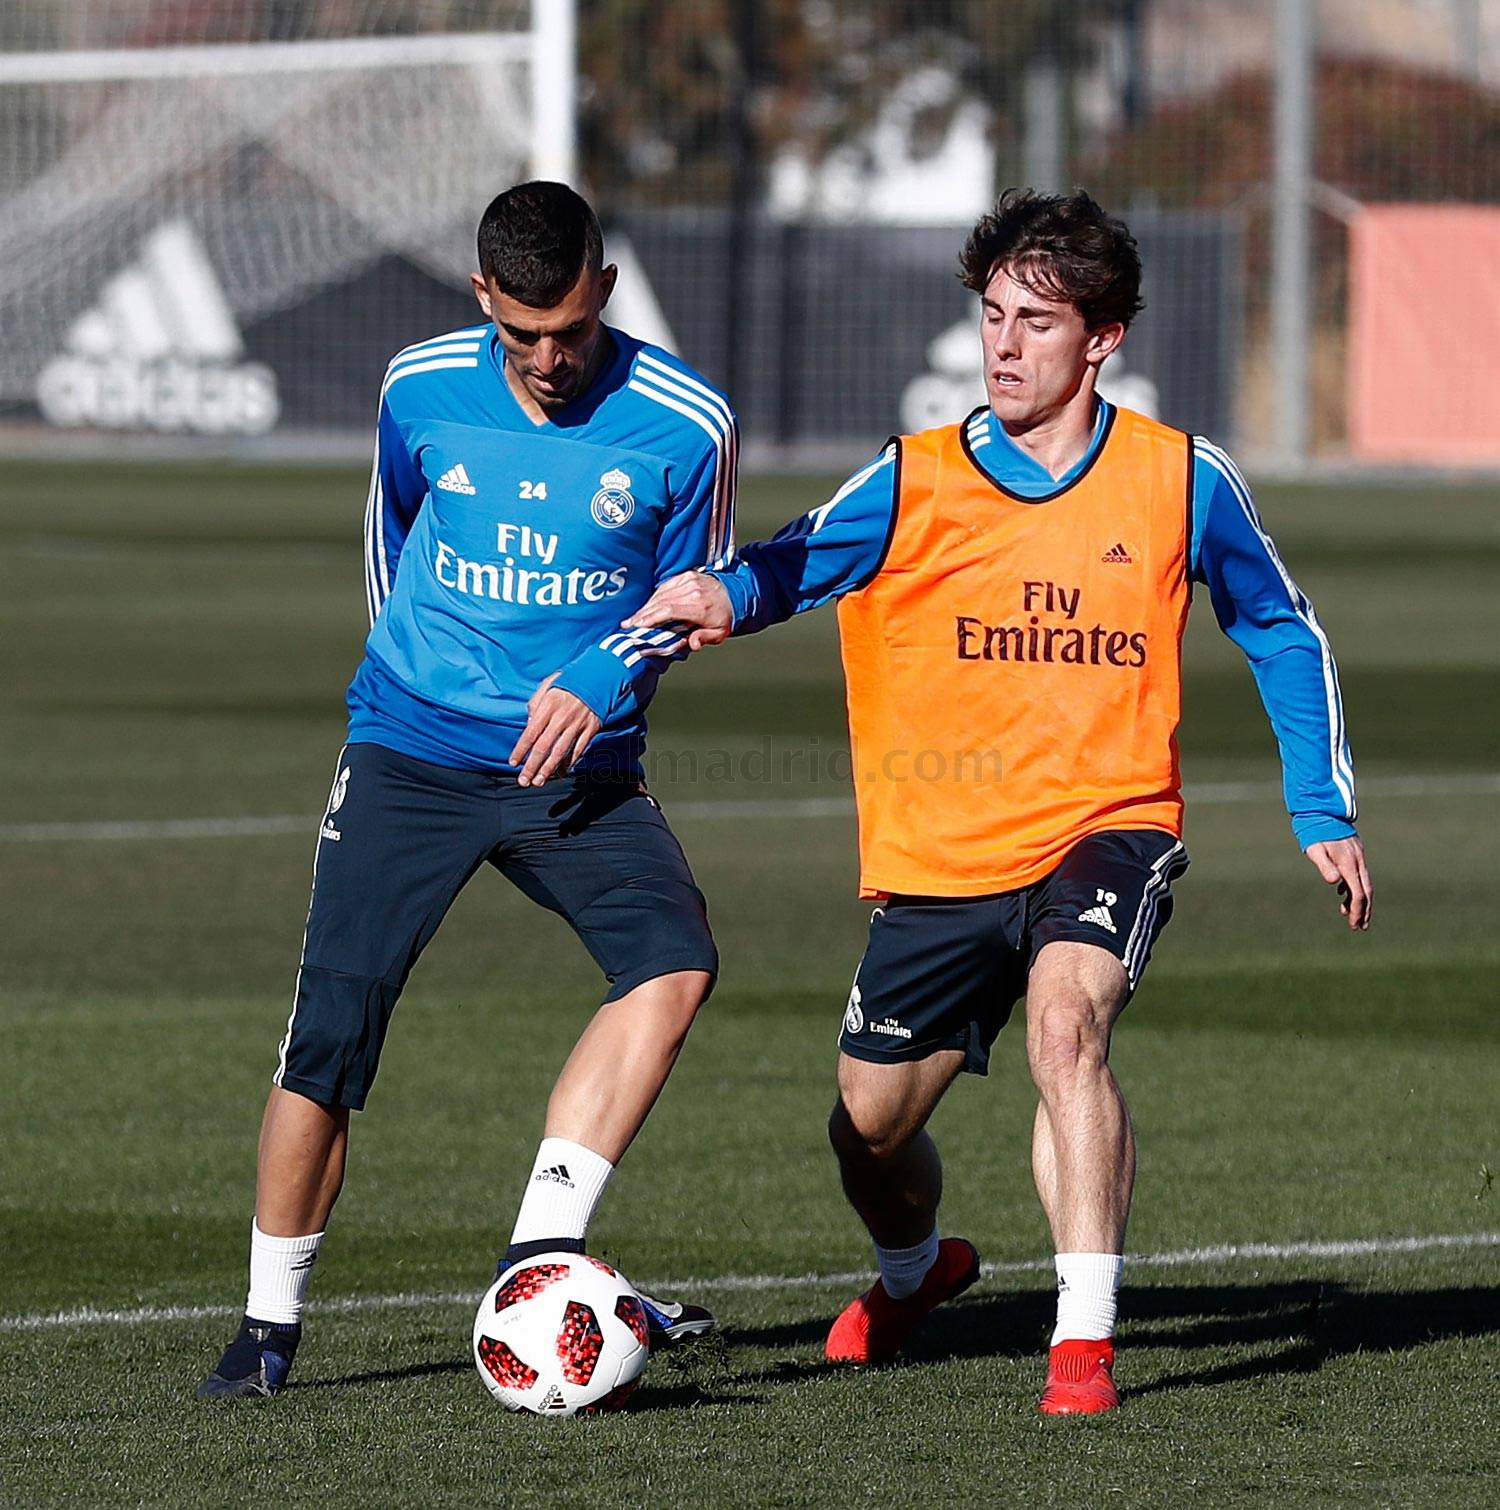 Real Madrid - Entrenamiento del Real Madrid - 07-01-2019